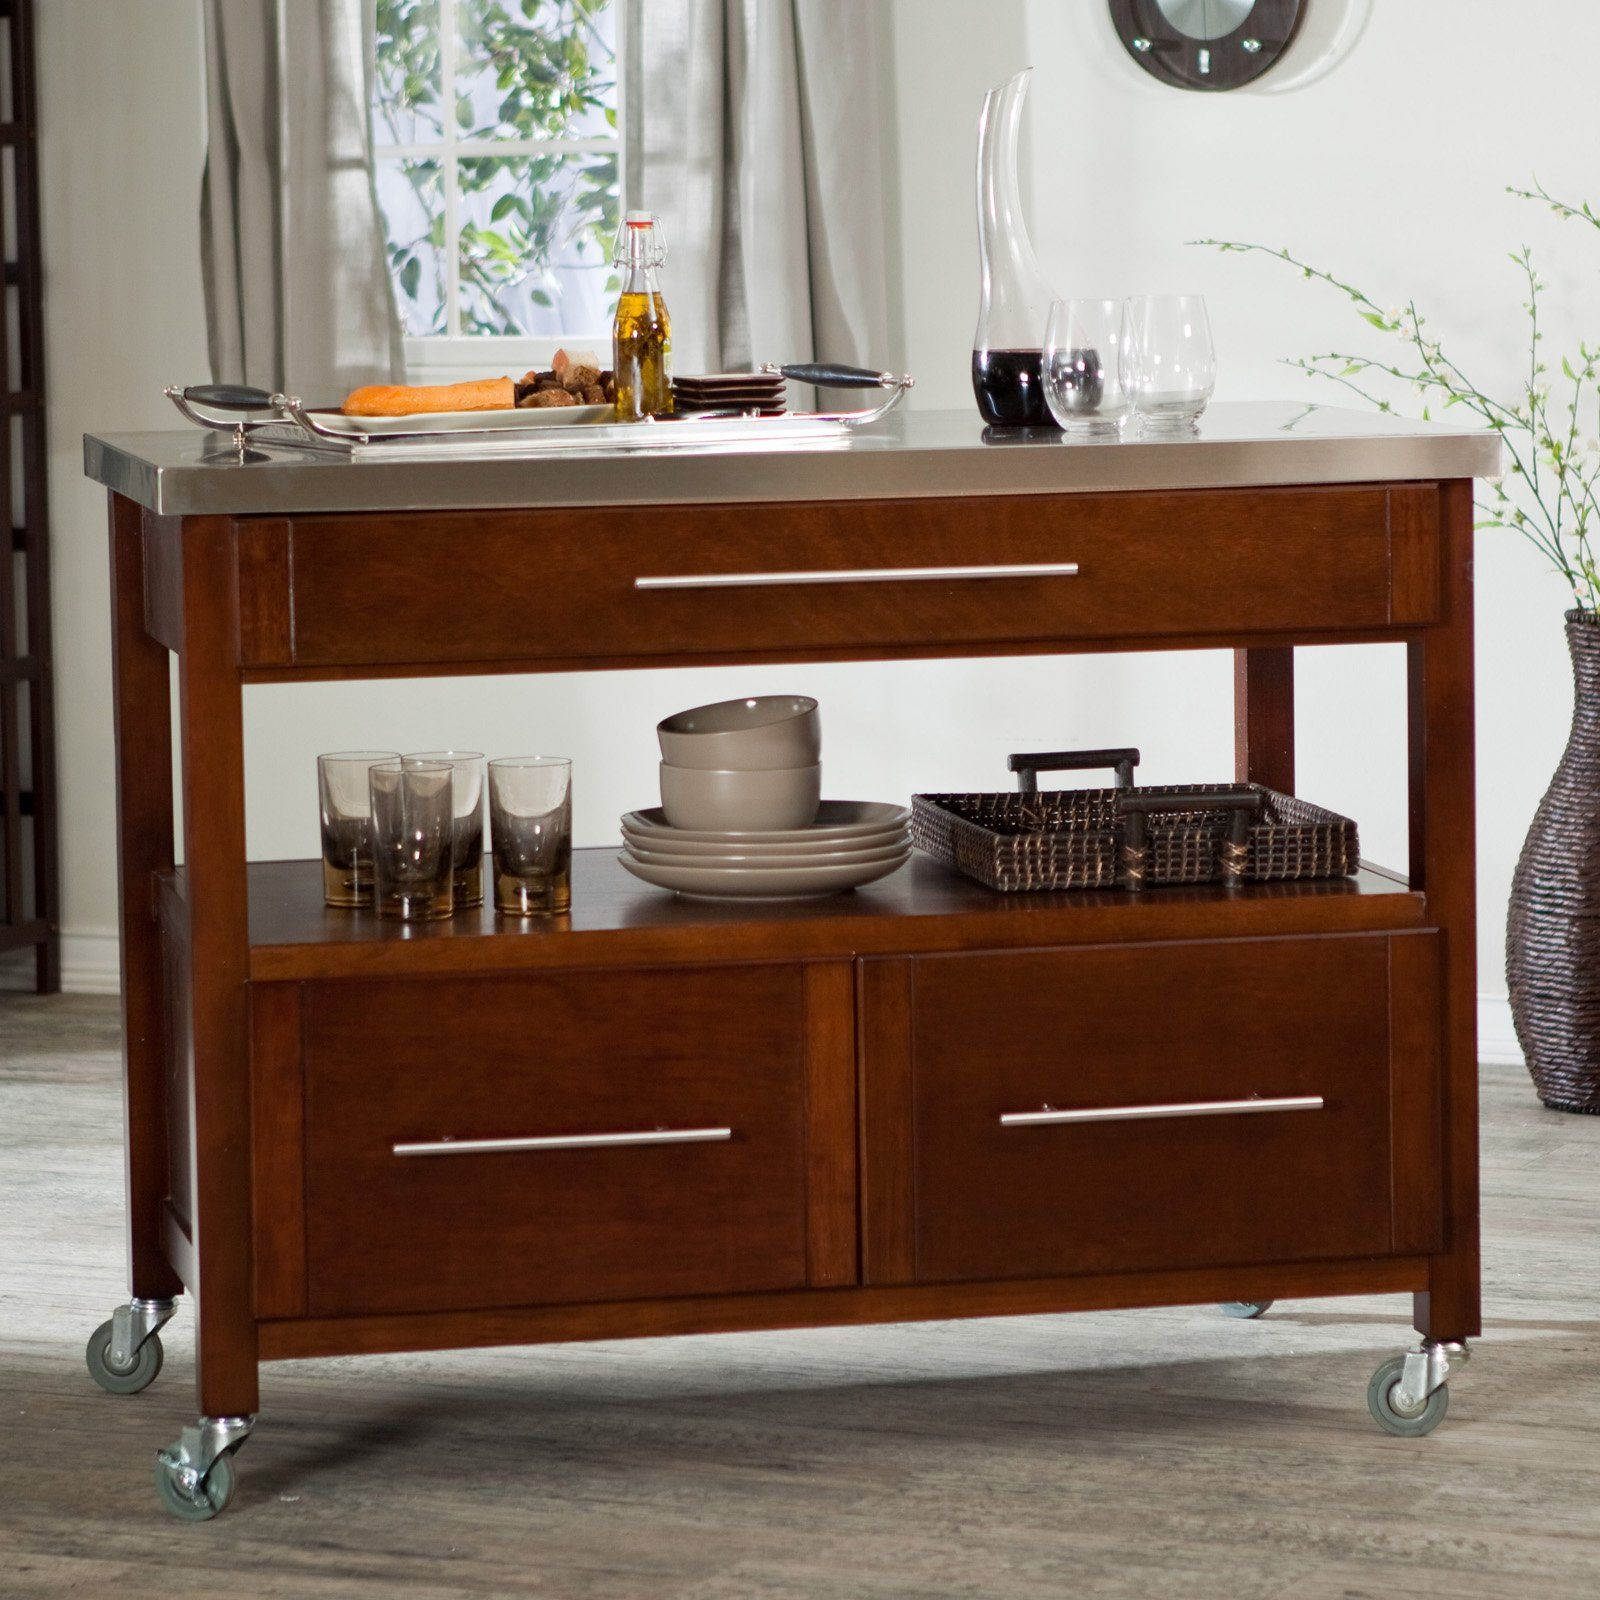 Superior 60 Types Of Small Kitchen Islands U0026 Carts On Wheels (2017)